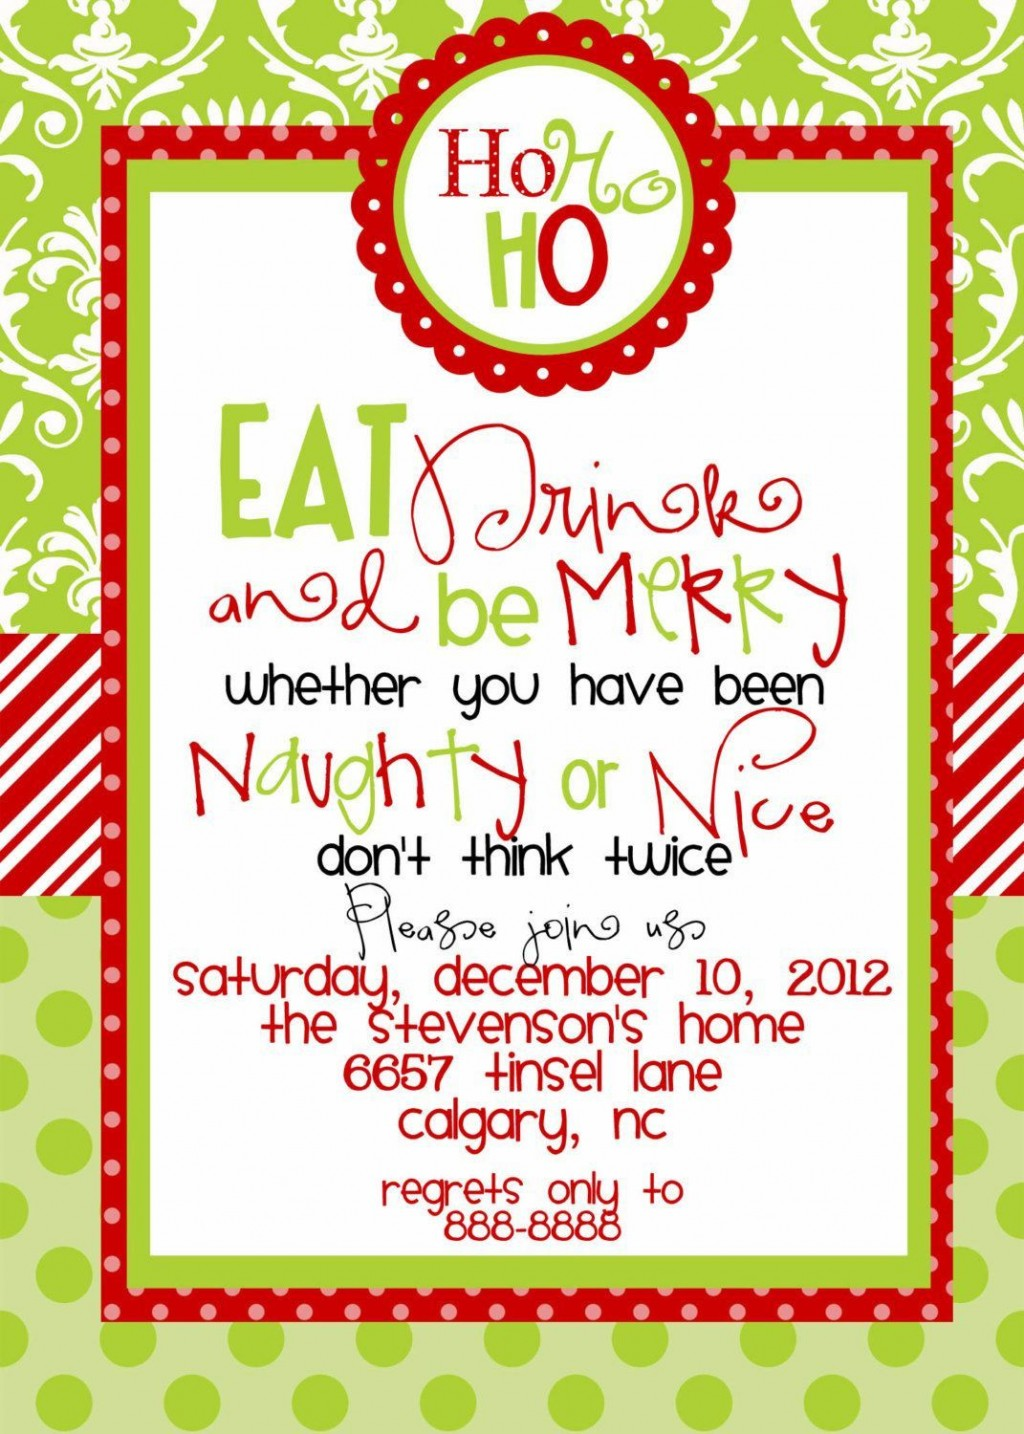 002 Frightening Party Invite Template Free Idea  Ugly Sweater Invitation Word Christma Printable Swimming UkLarge